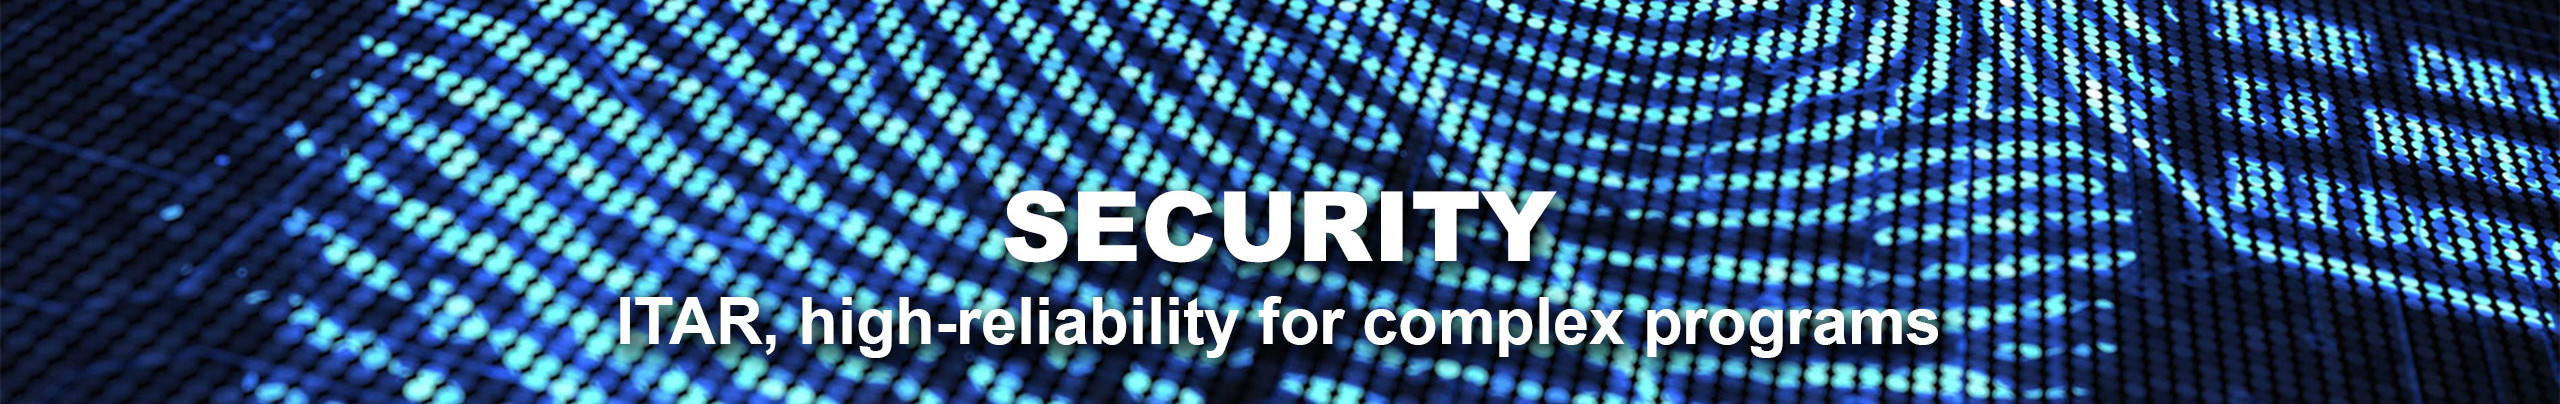 SECURITY - UEI is ITAR registered for security and defense contract manufacturing and has lot traceability.